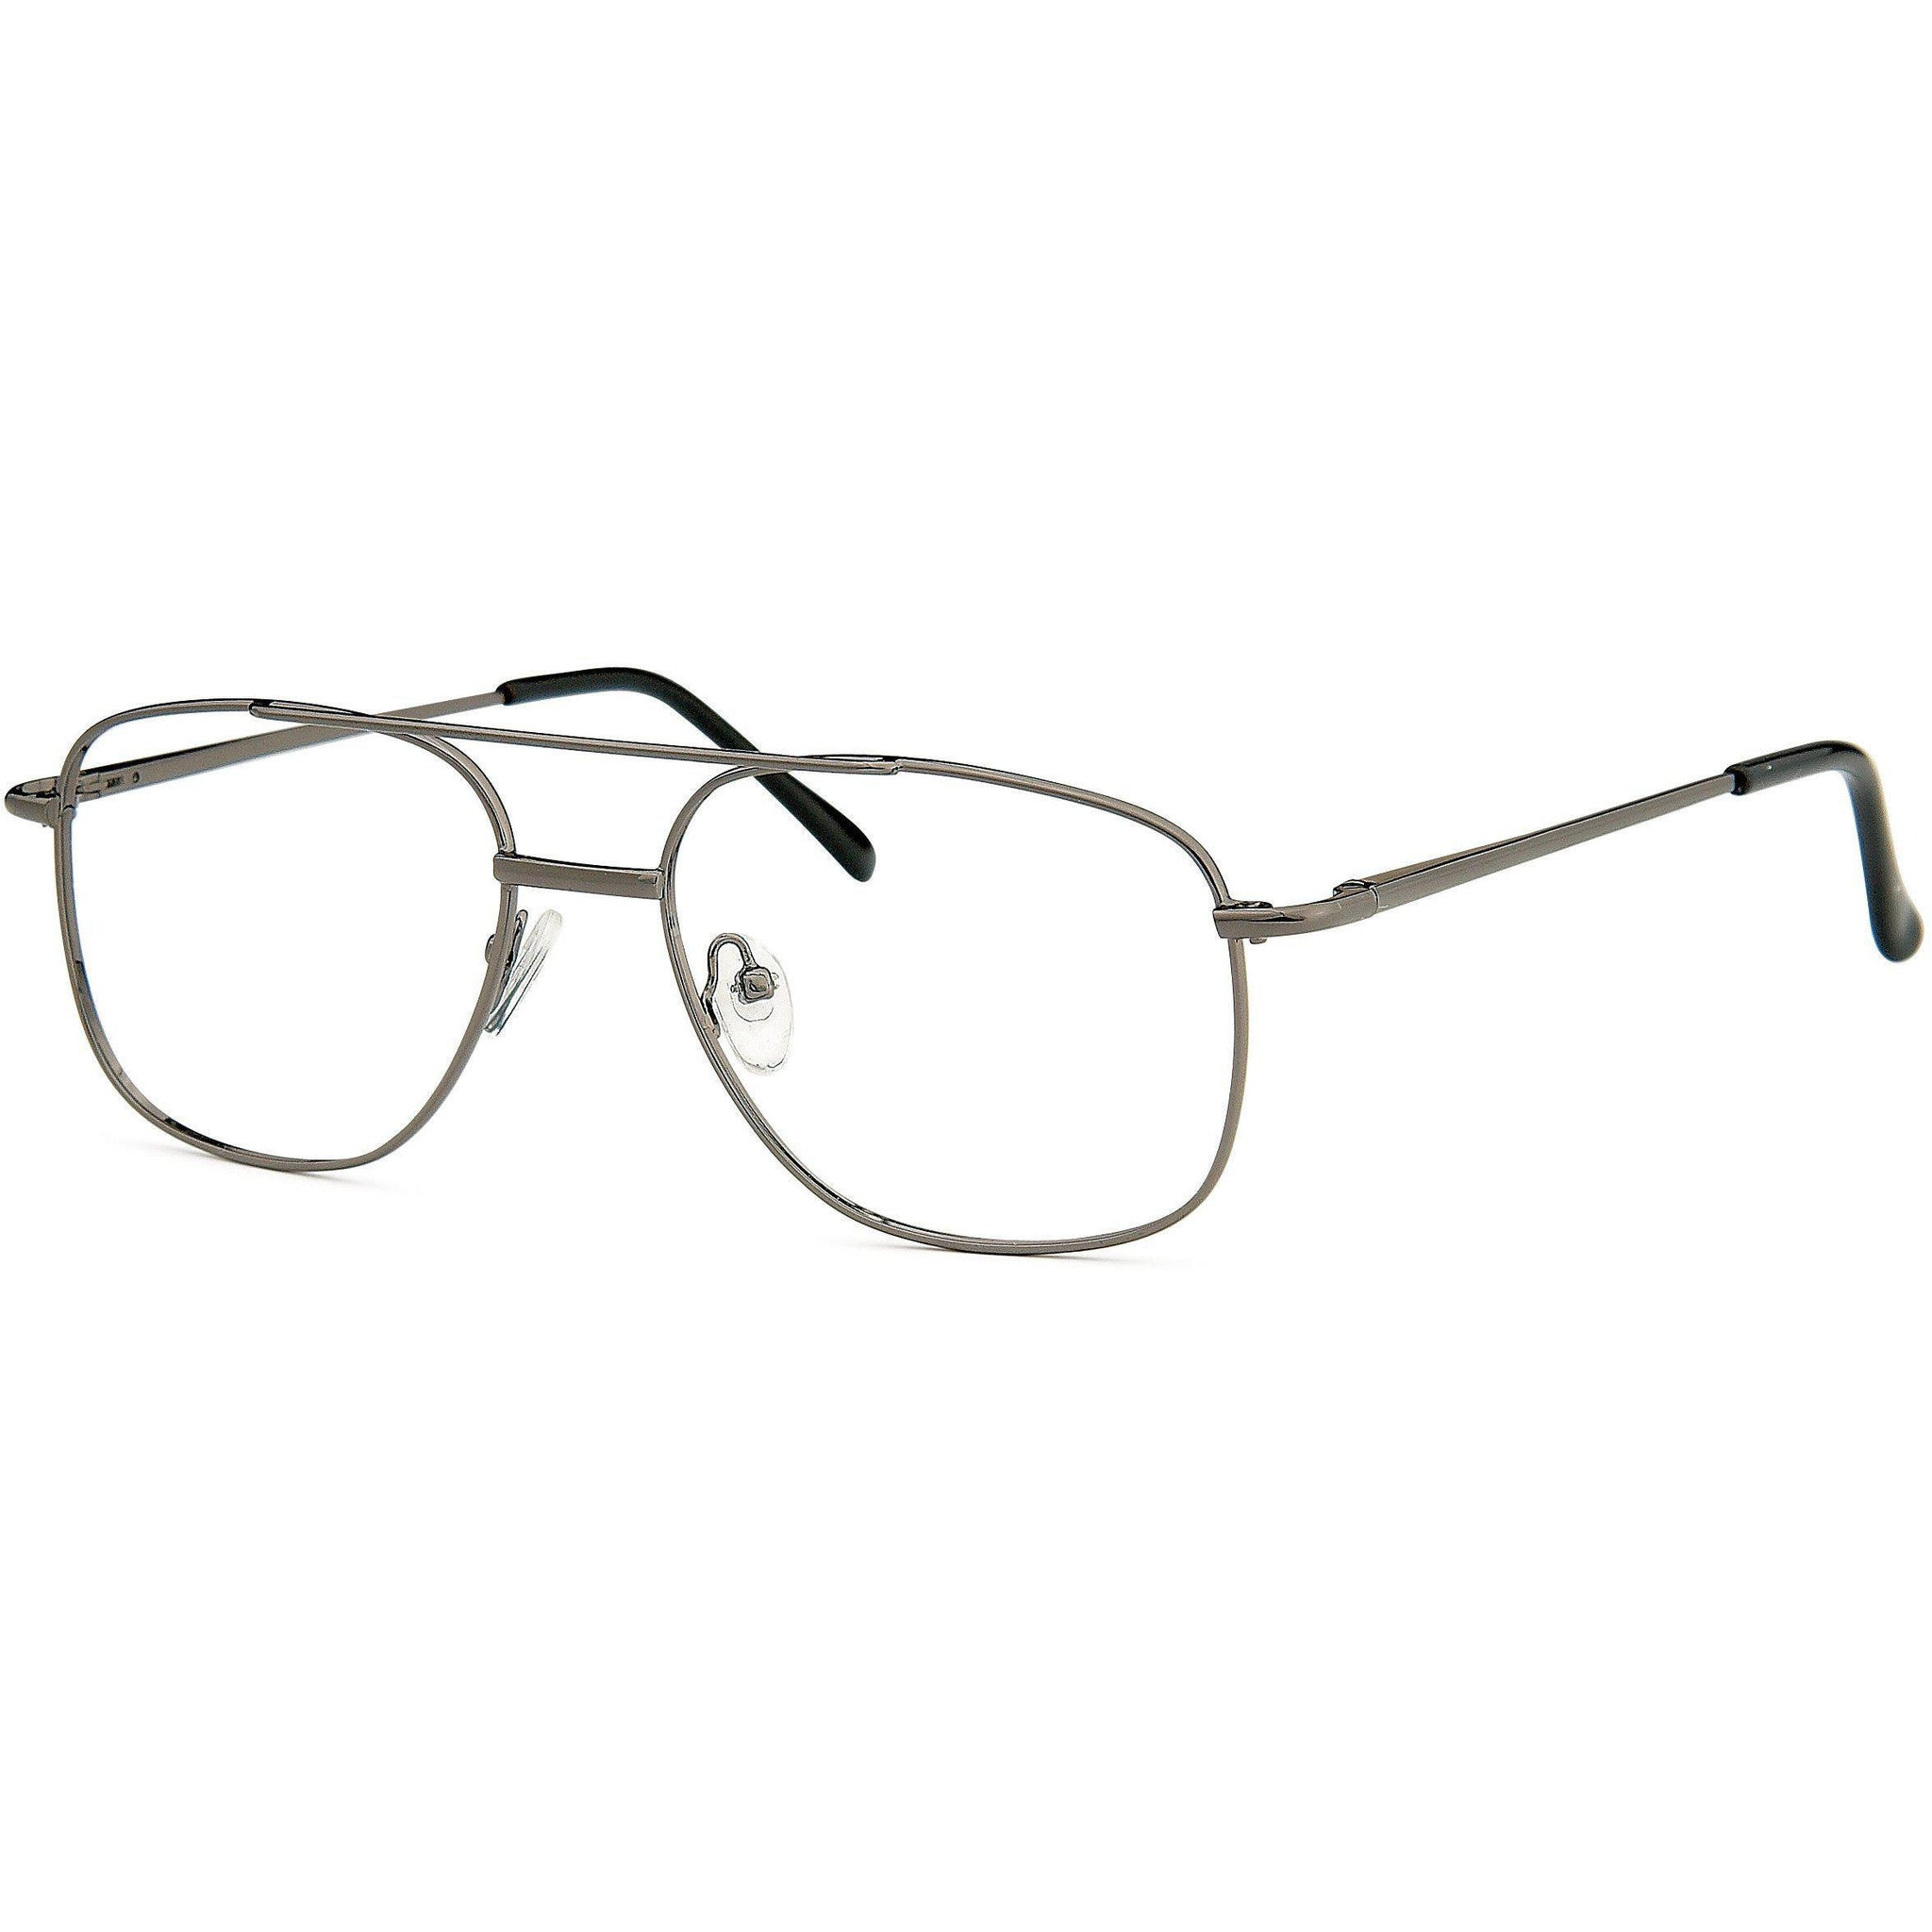 Appletree Prescription Glasses 7705 Eyeglasses Frame